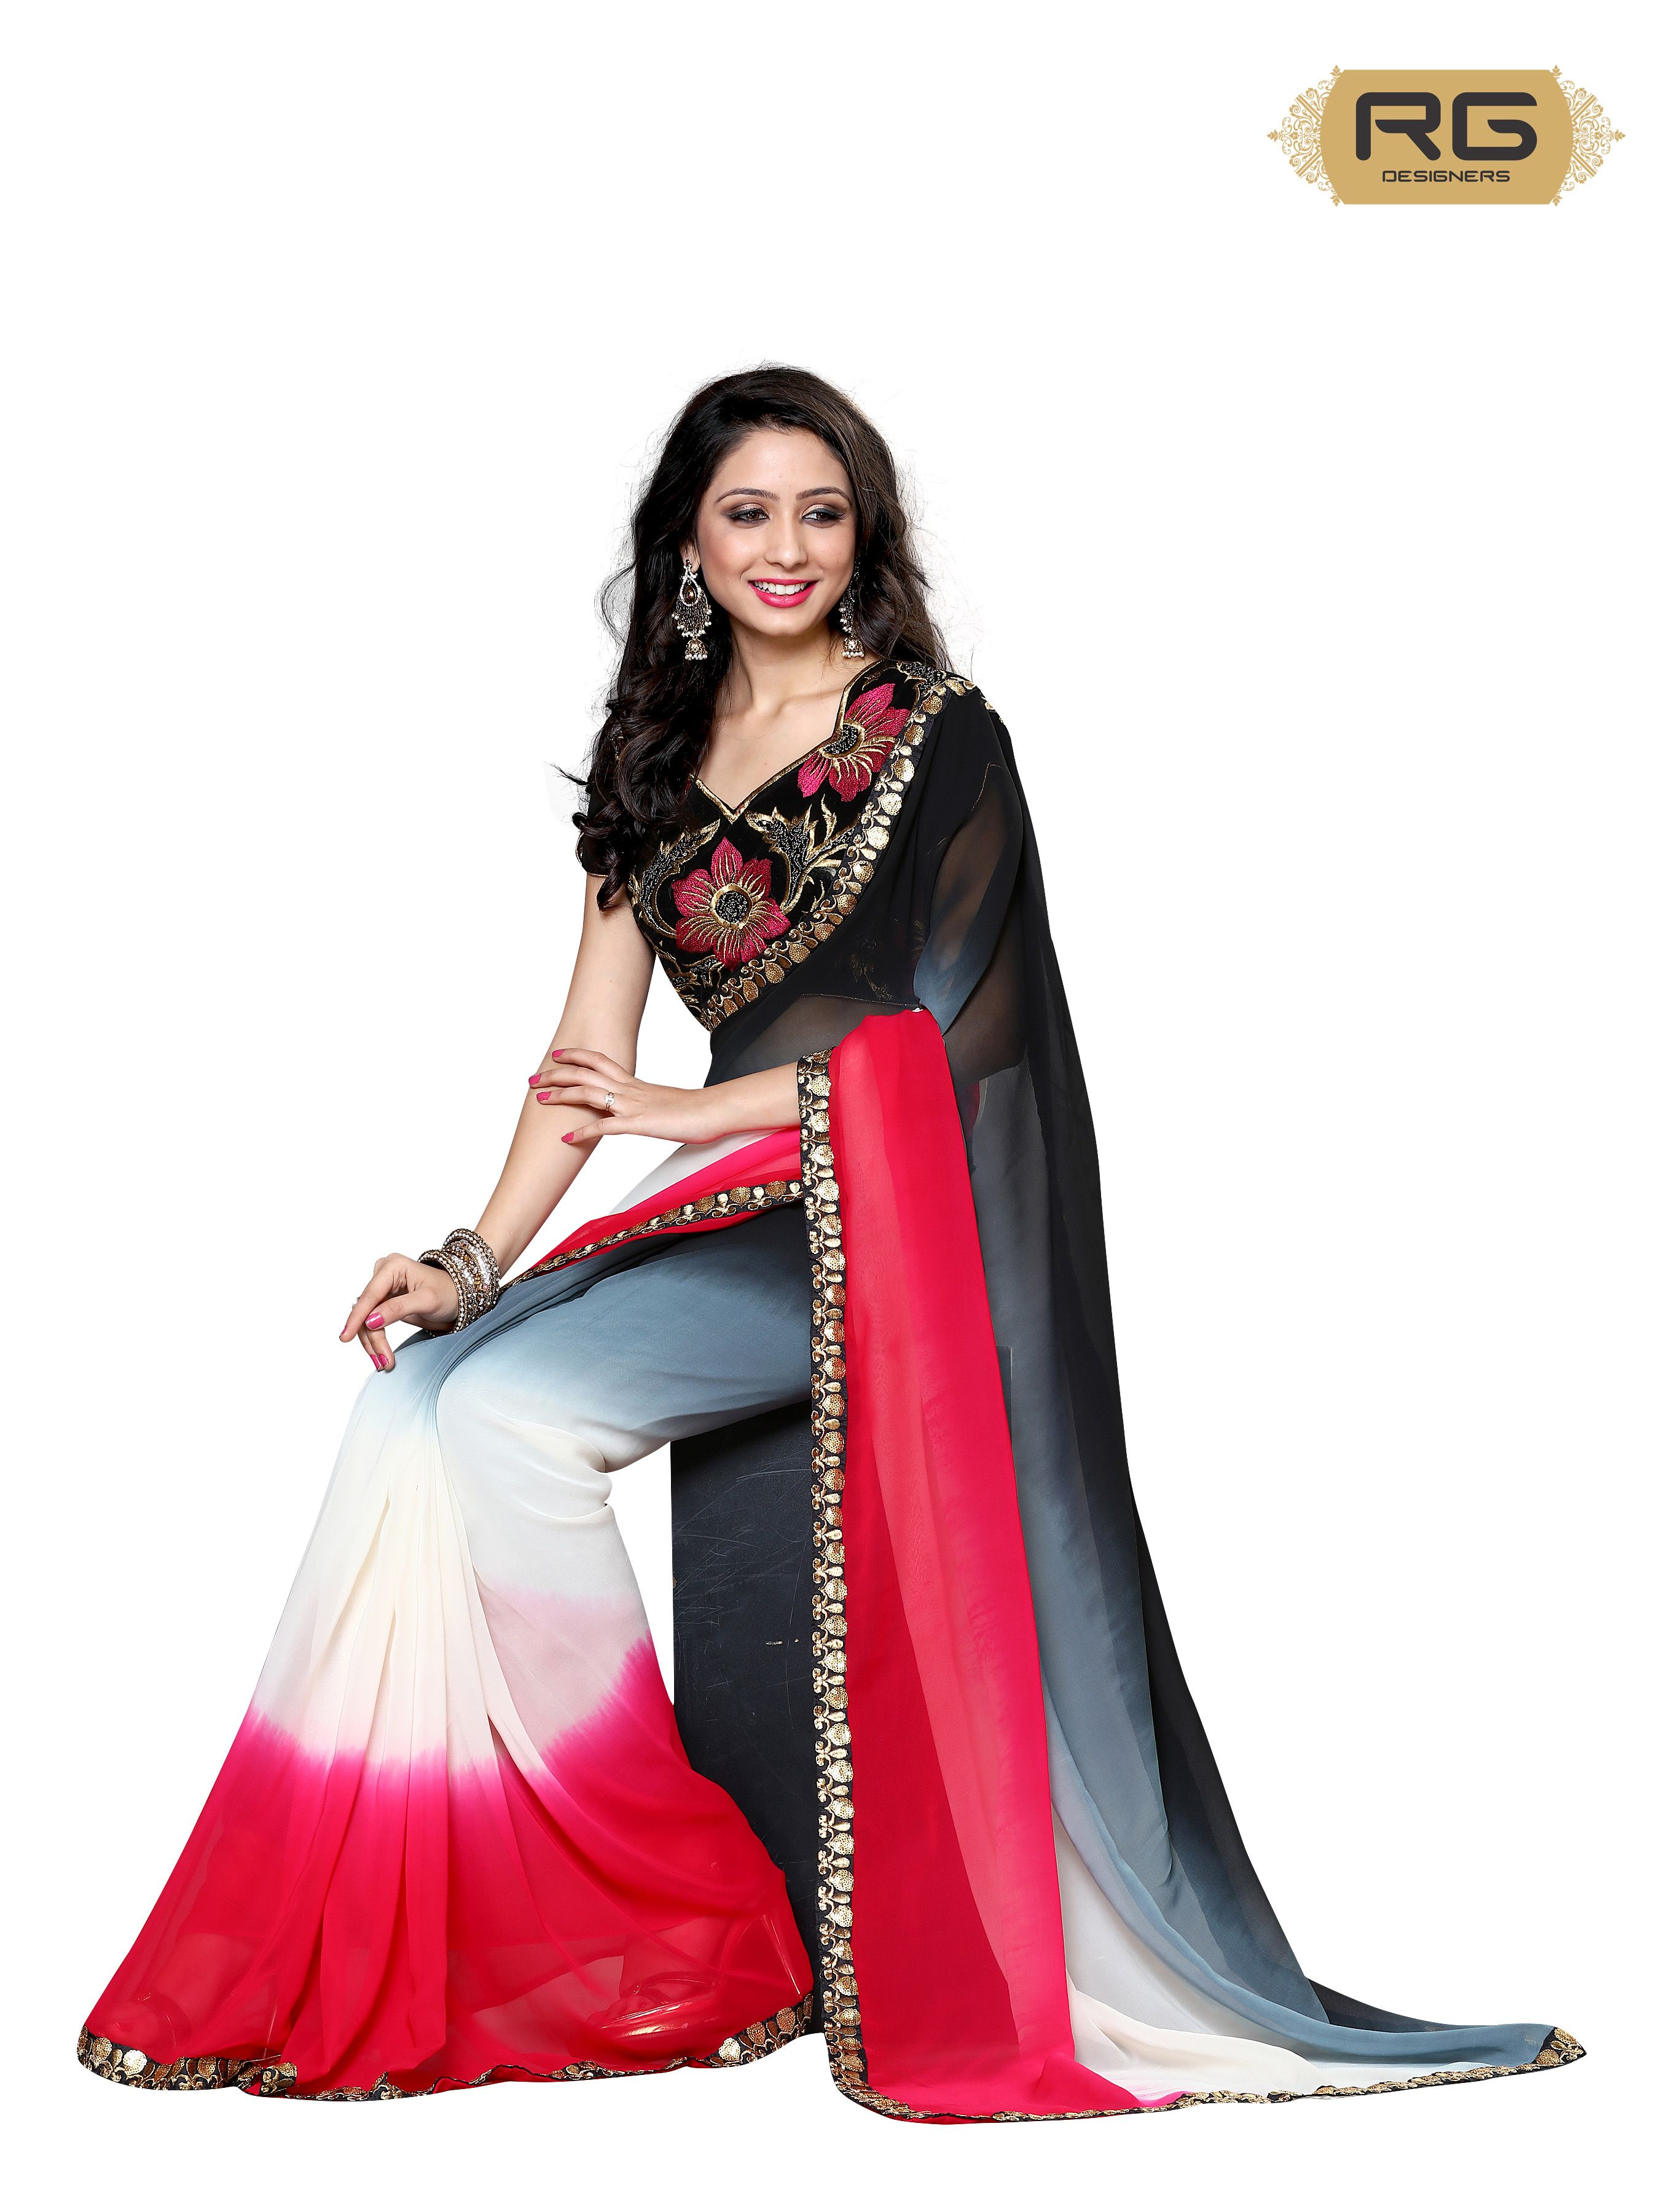 84bd39febb177d Red Heavy Blouse Saree || Floral embroidered blouse with a 3 shade saree in  red, black and white look stunning. || RG Designers